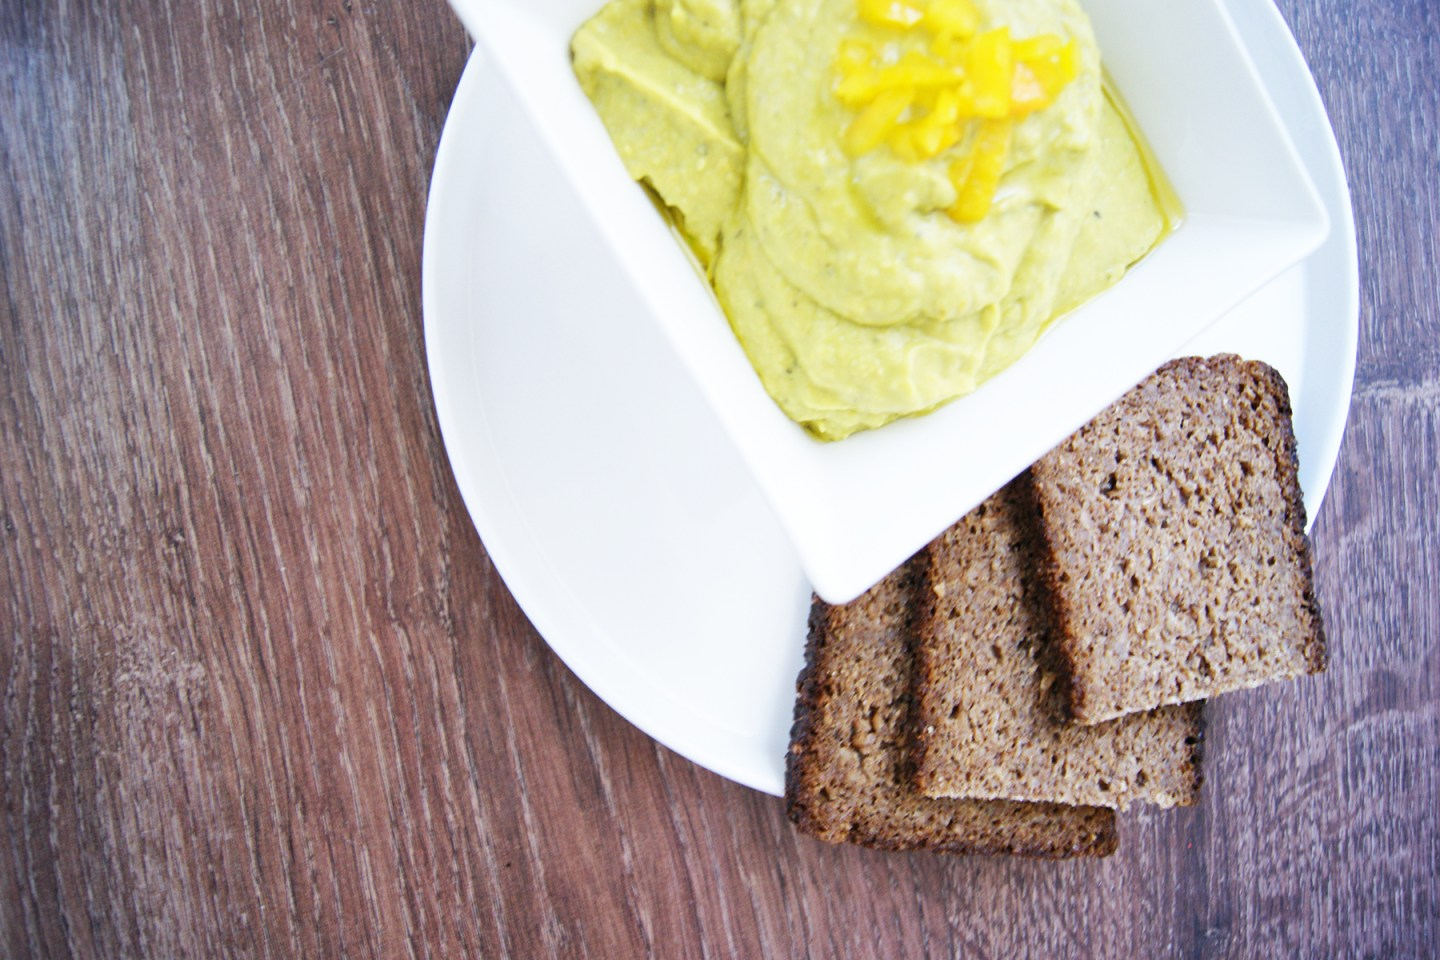 Avocado & yellow pepper Hummus recipe